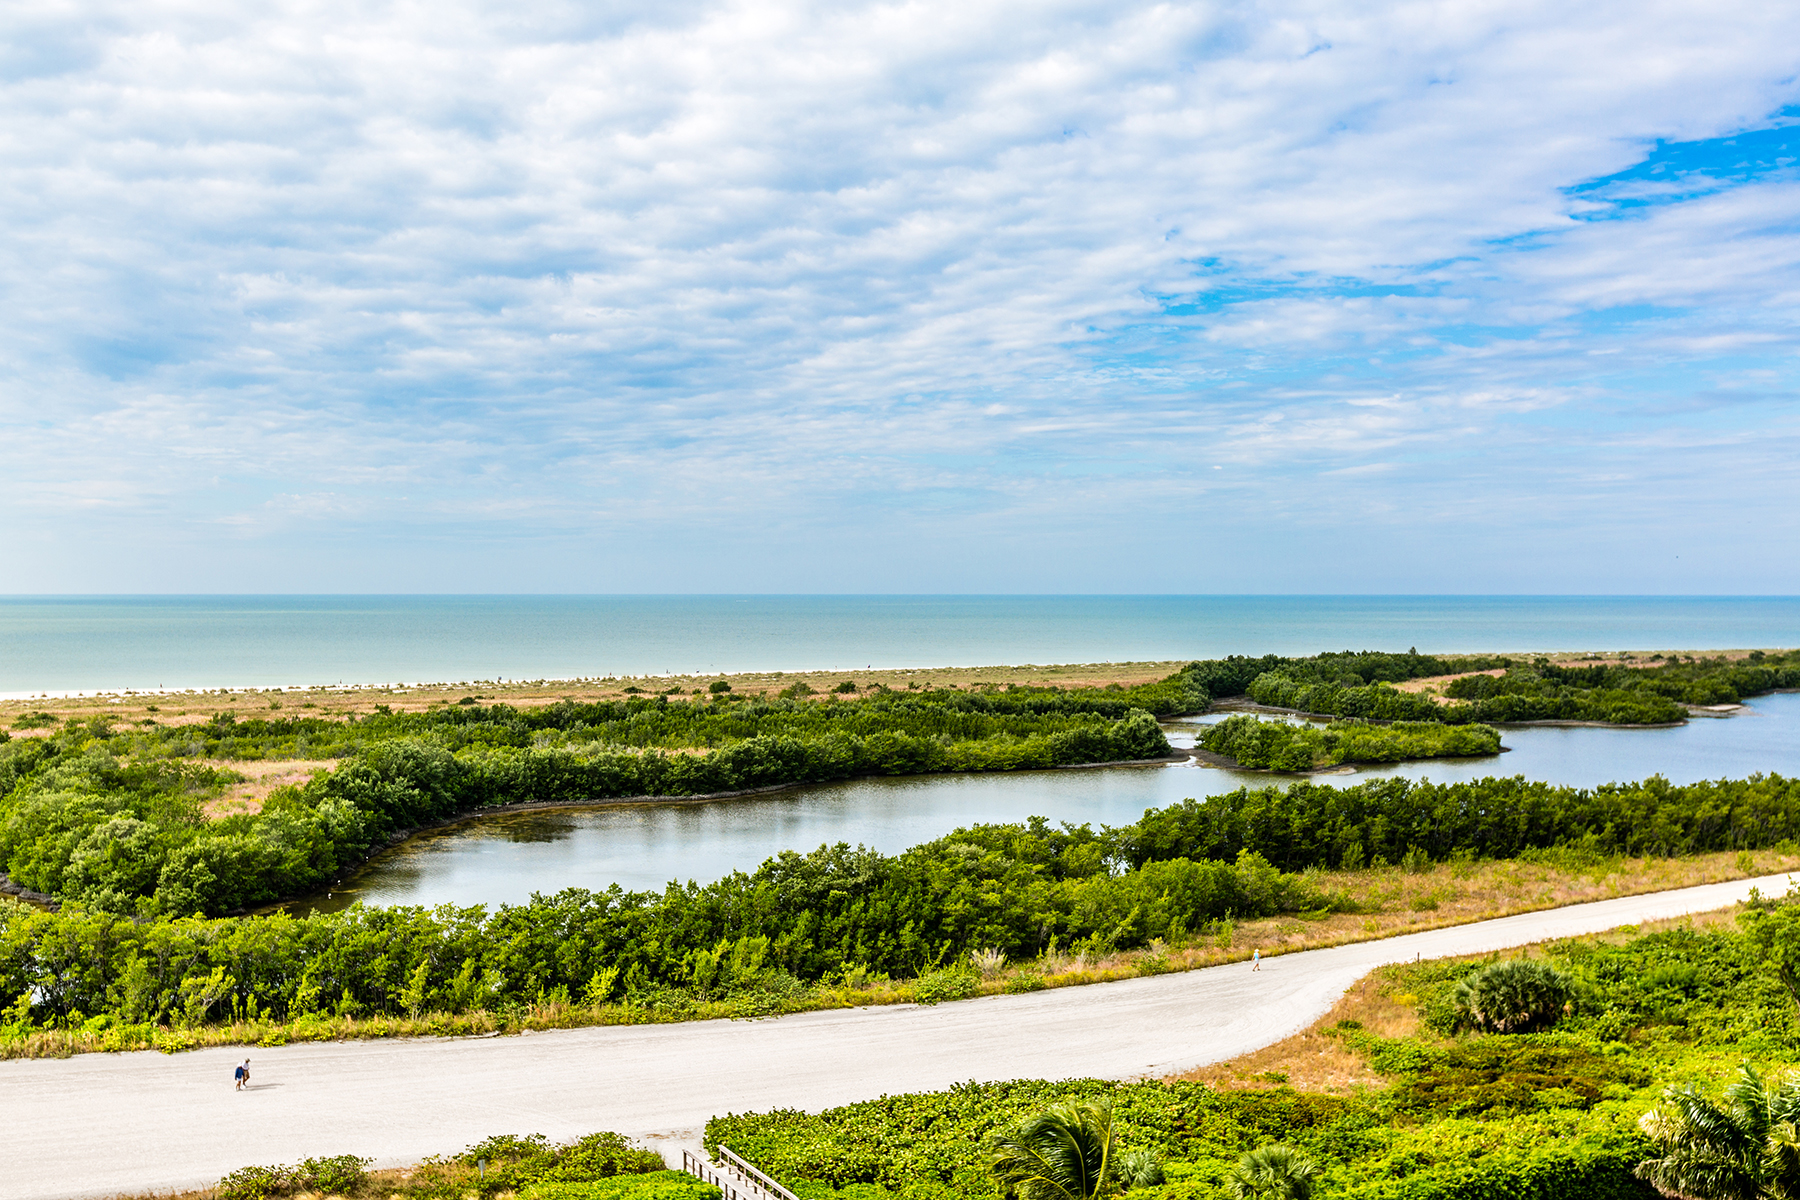 Condominium for Sale at MARCO ISLAND - SOUTH SEAS 380 Seaview Ct 1003 Marco Island, Florida, 34145 United States